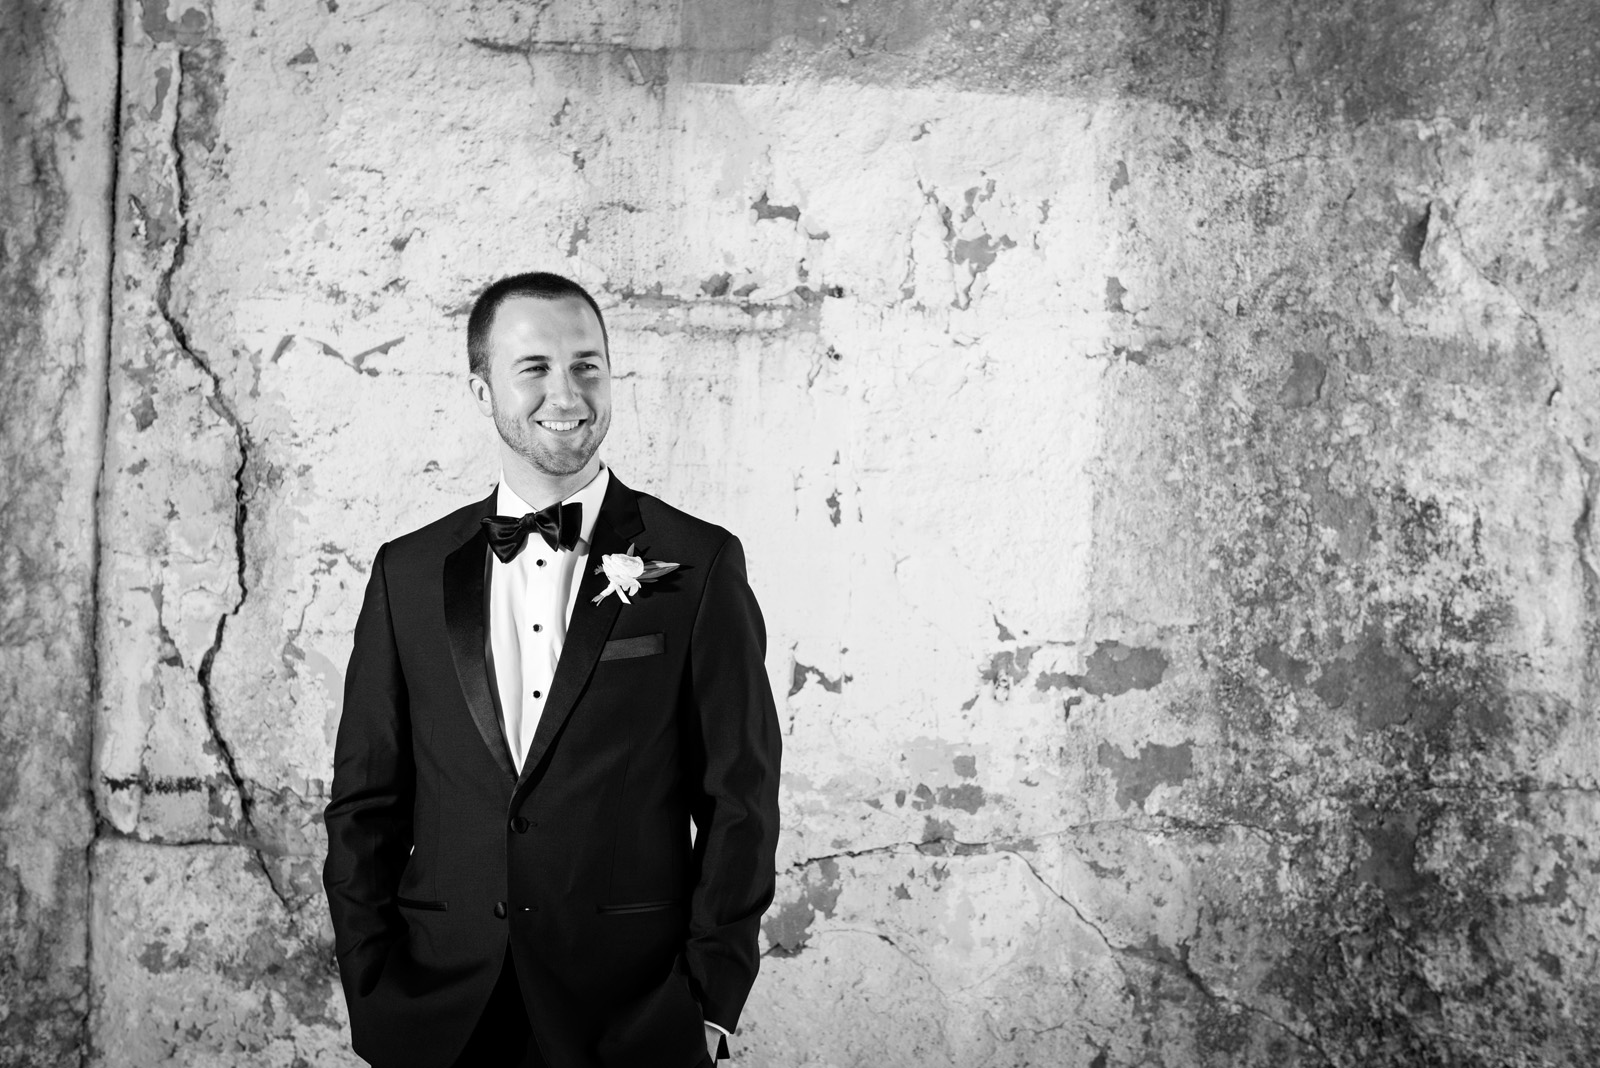 Urban black and white portrait of groom